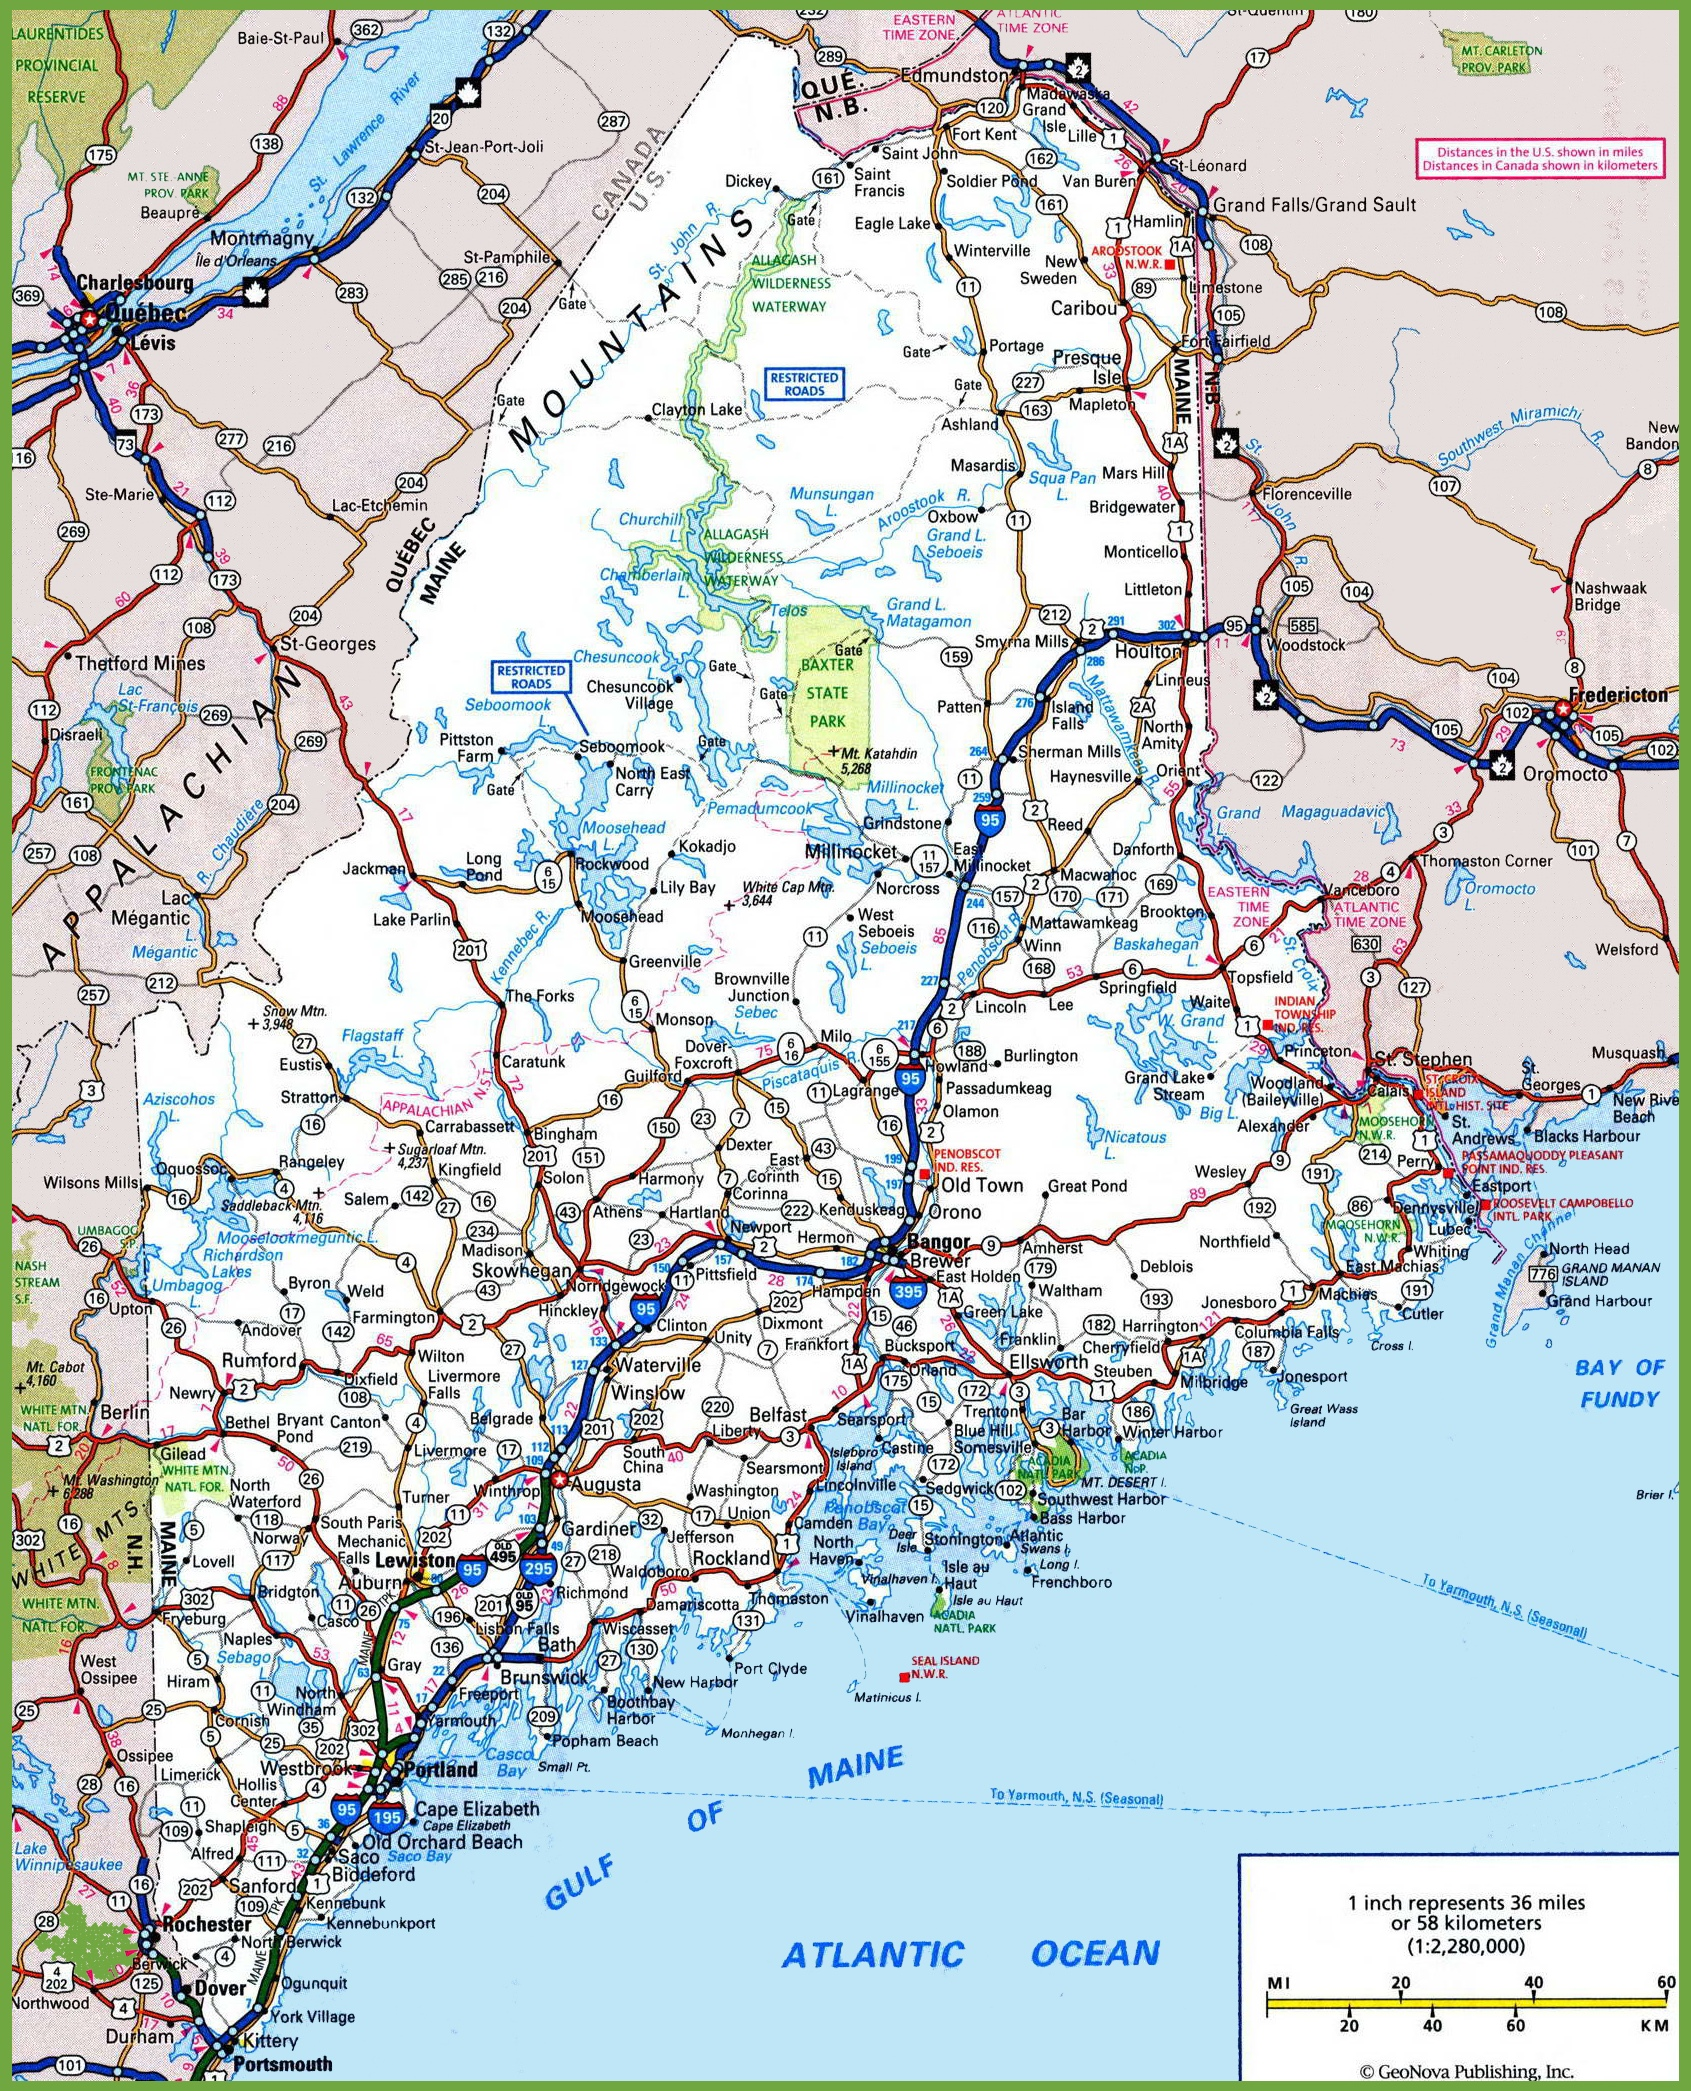 Maine Road Map - Us road atlas map